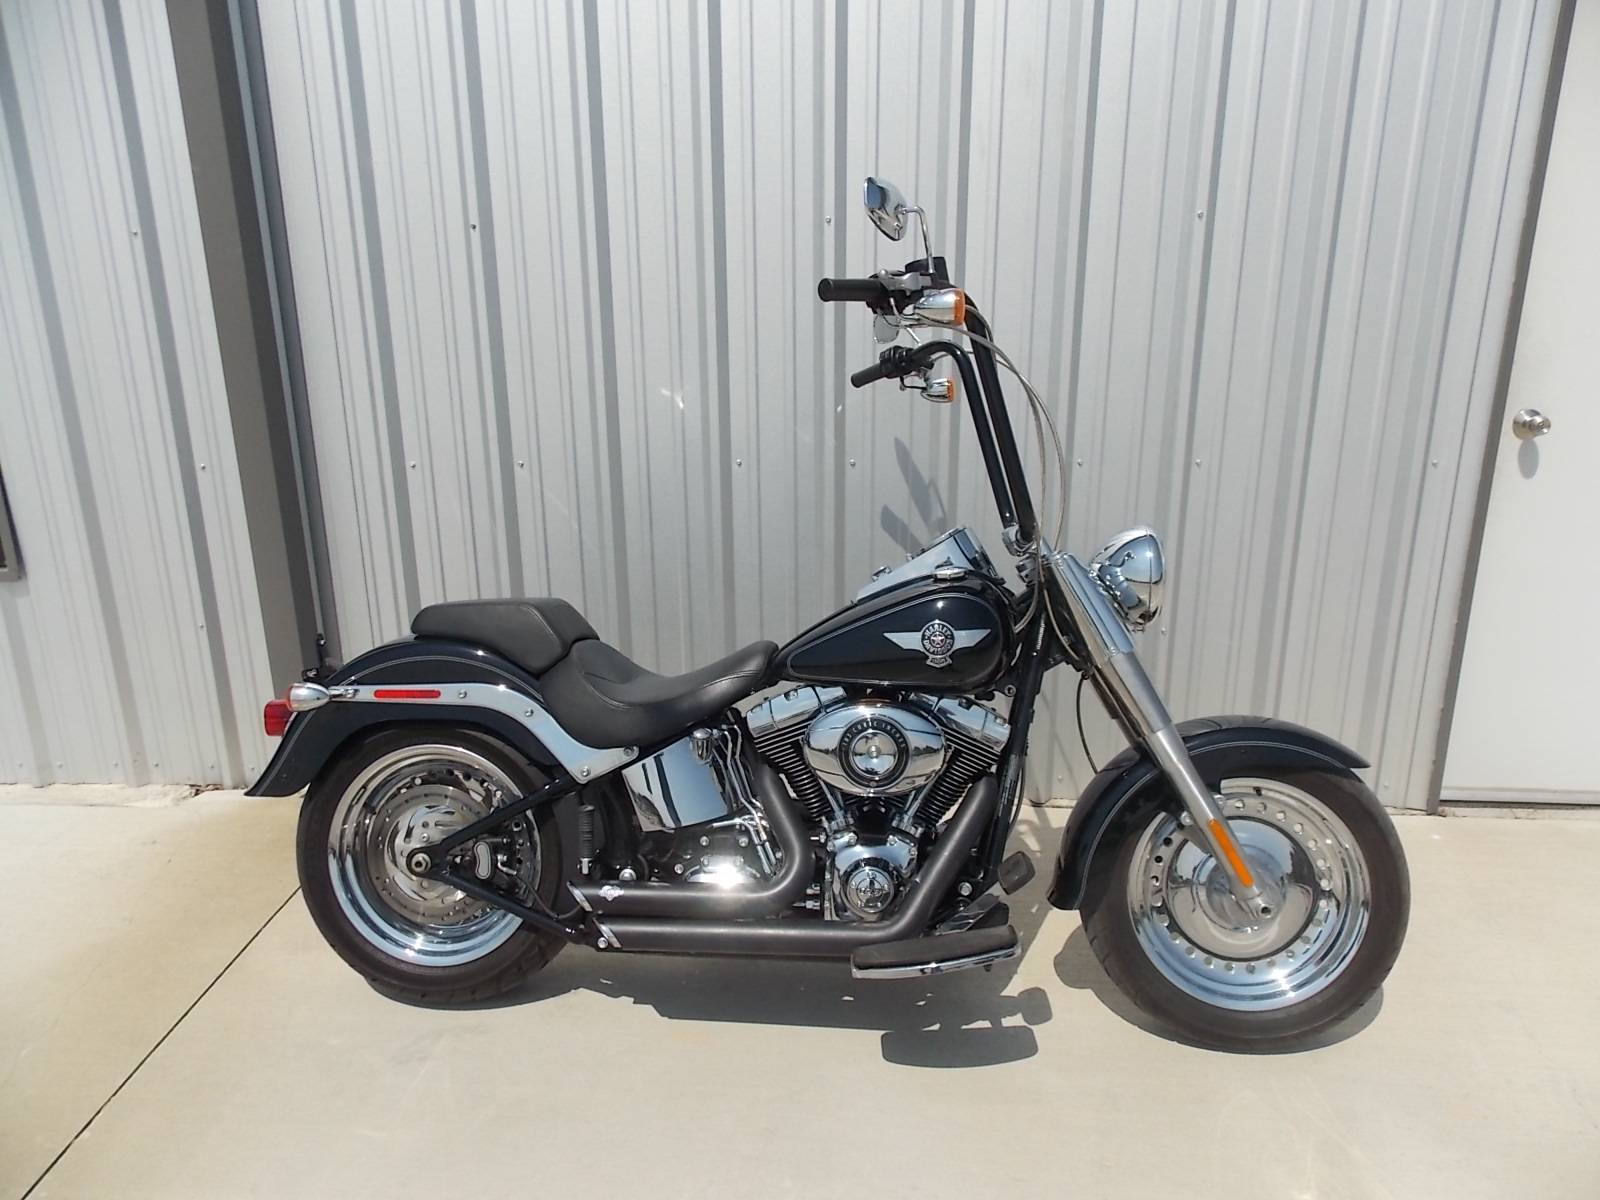 used 2012 harley davidson softail fat boy motorcycles in. Black Bedroom Furniture Sets. Home Design Ideas